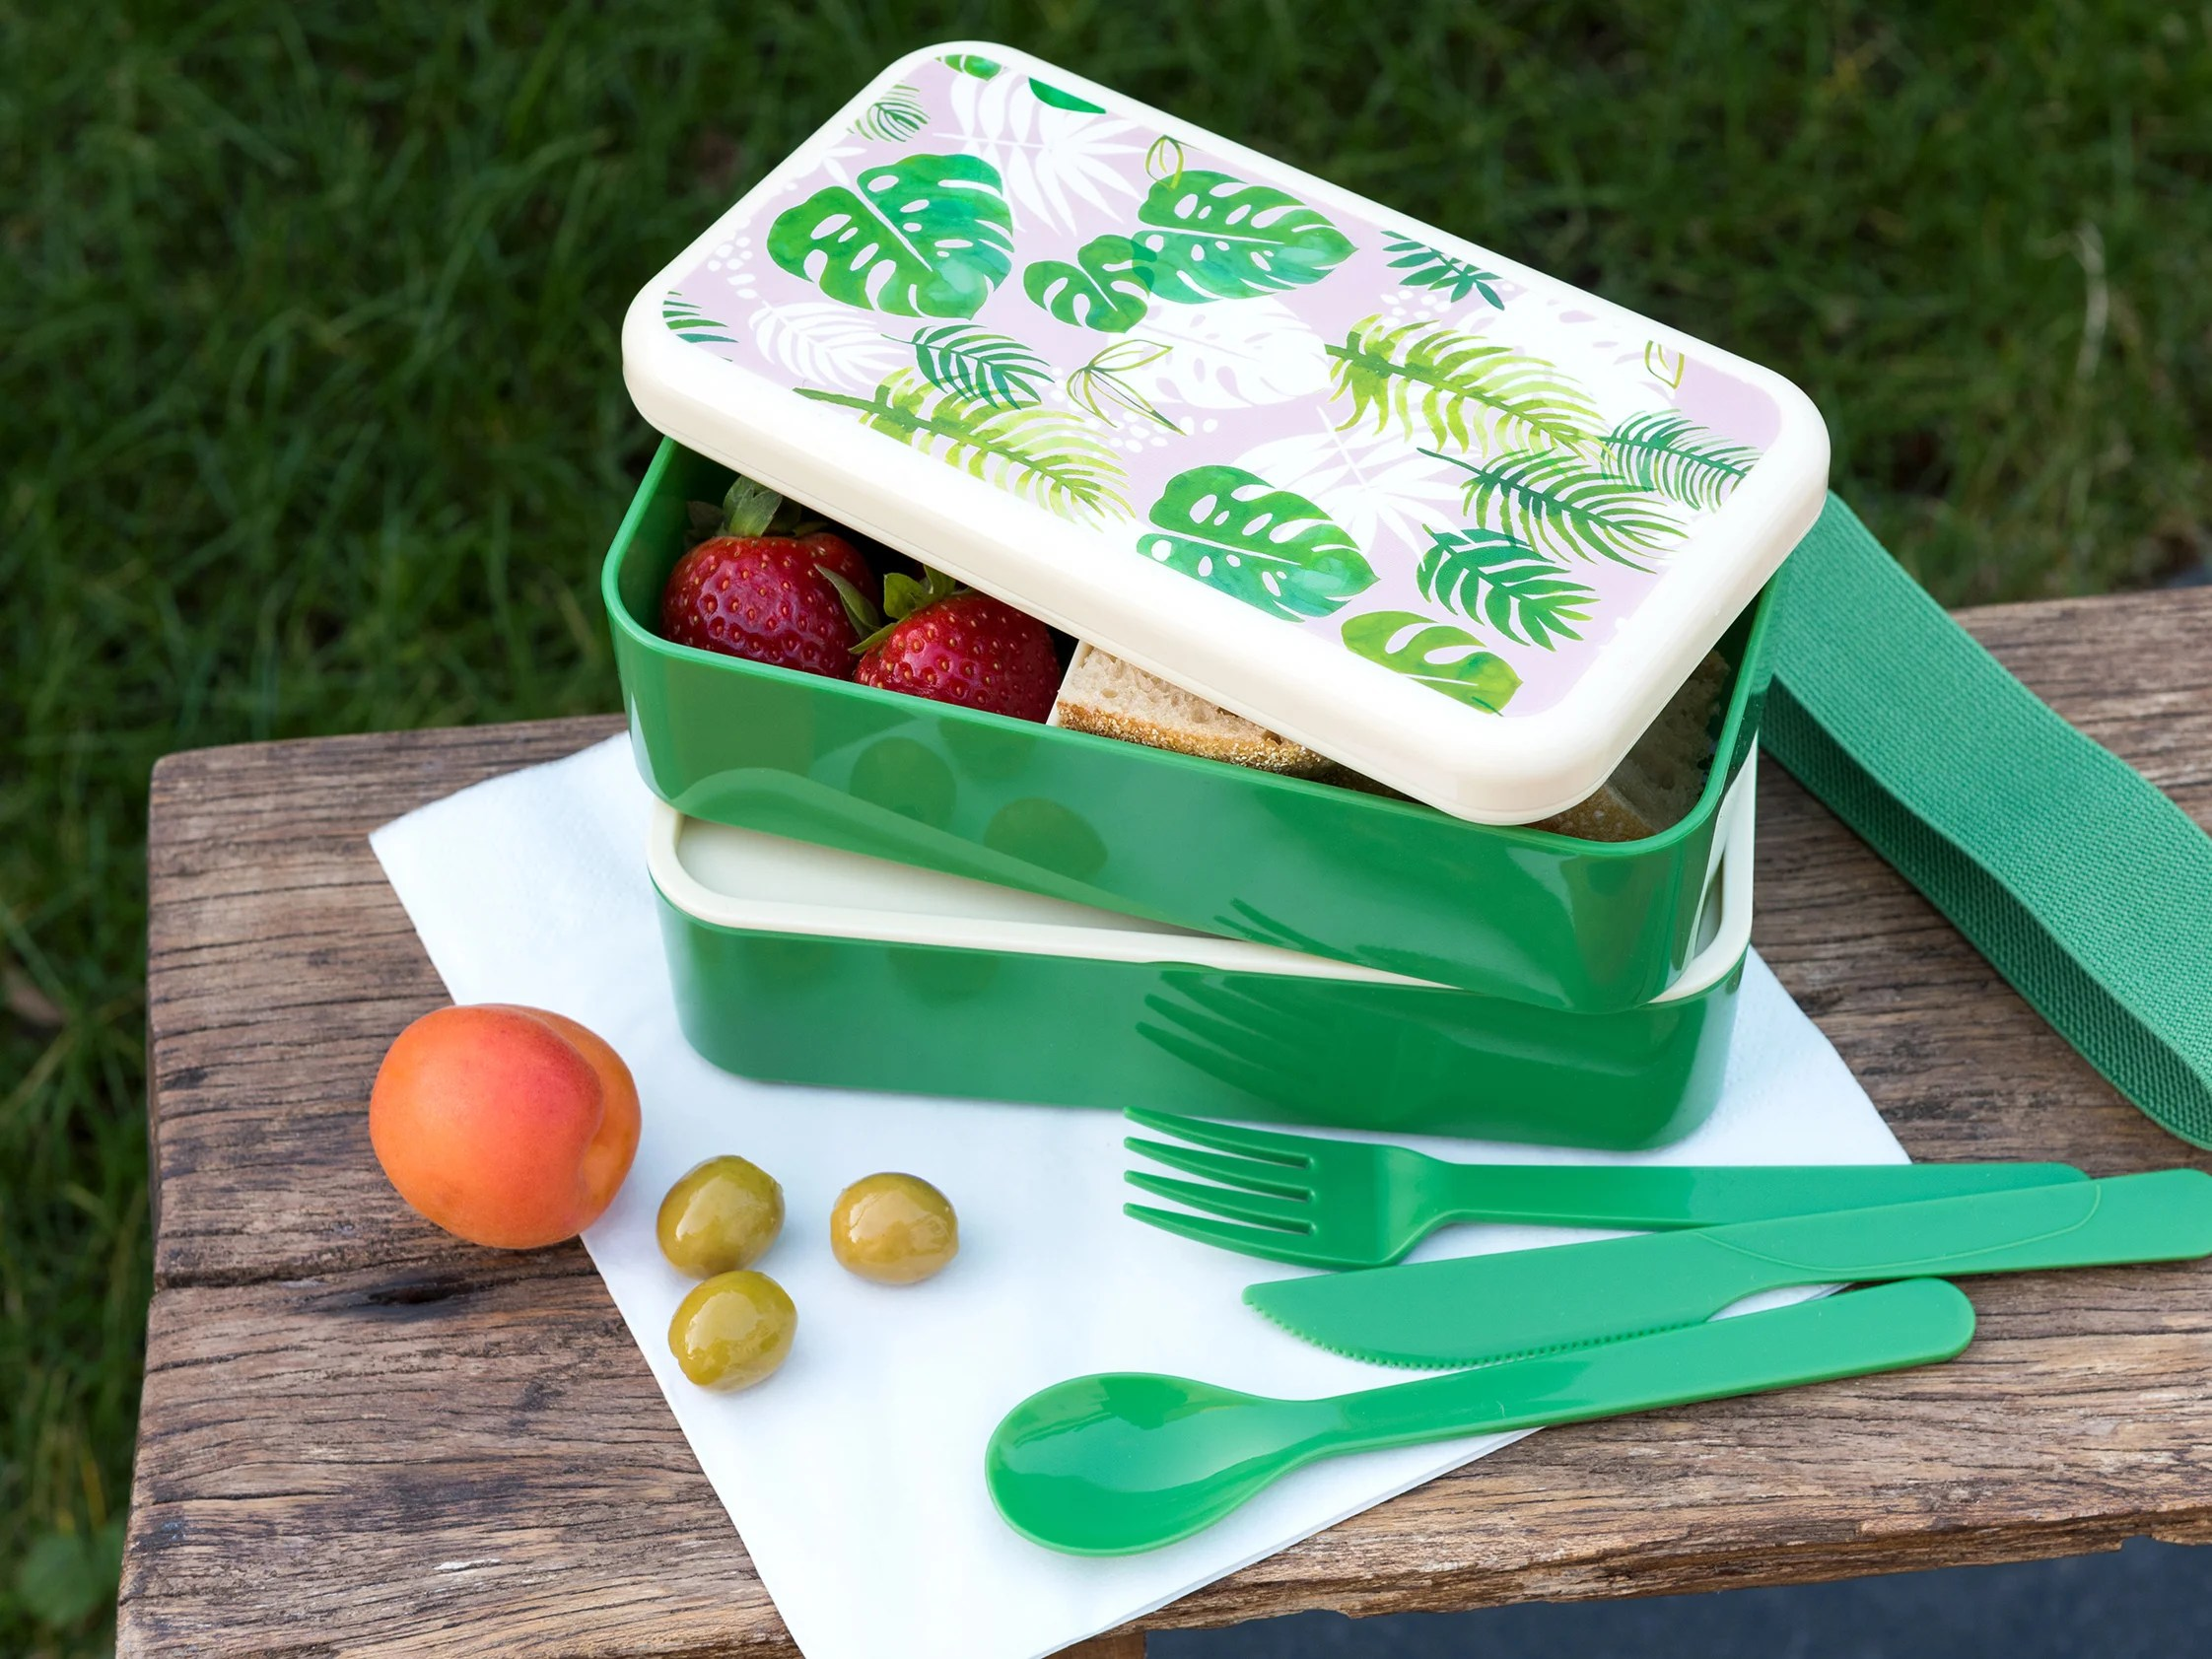 Lunch In A Box 10 Best Reusable Lunch Boxes The Independent